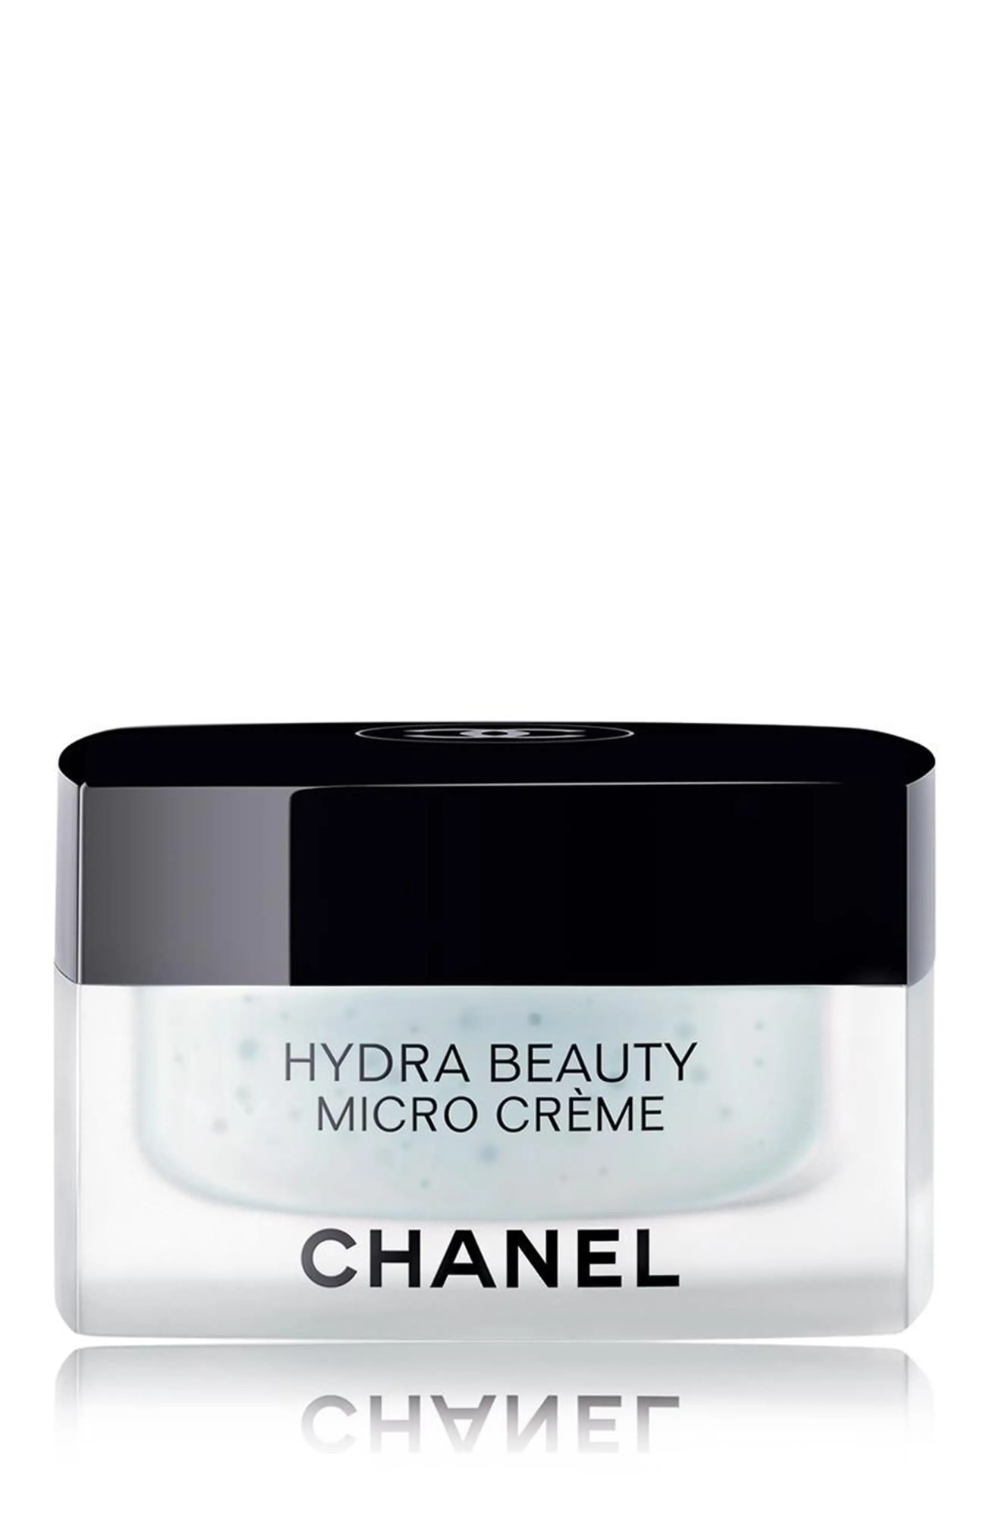 Chanel Hydra Beauty Micro Crème Fortifying Replenishing Hydration Nordstrom Chanel Hydra Beauty Moisturizer Chanel